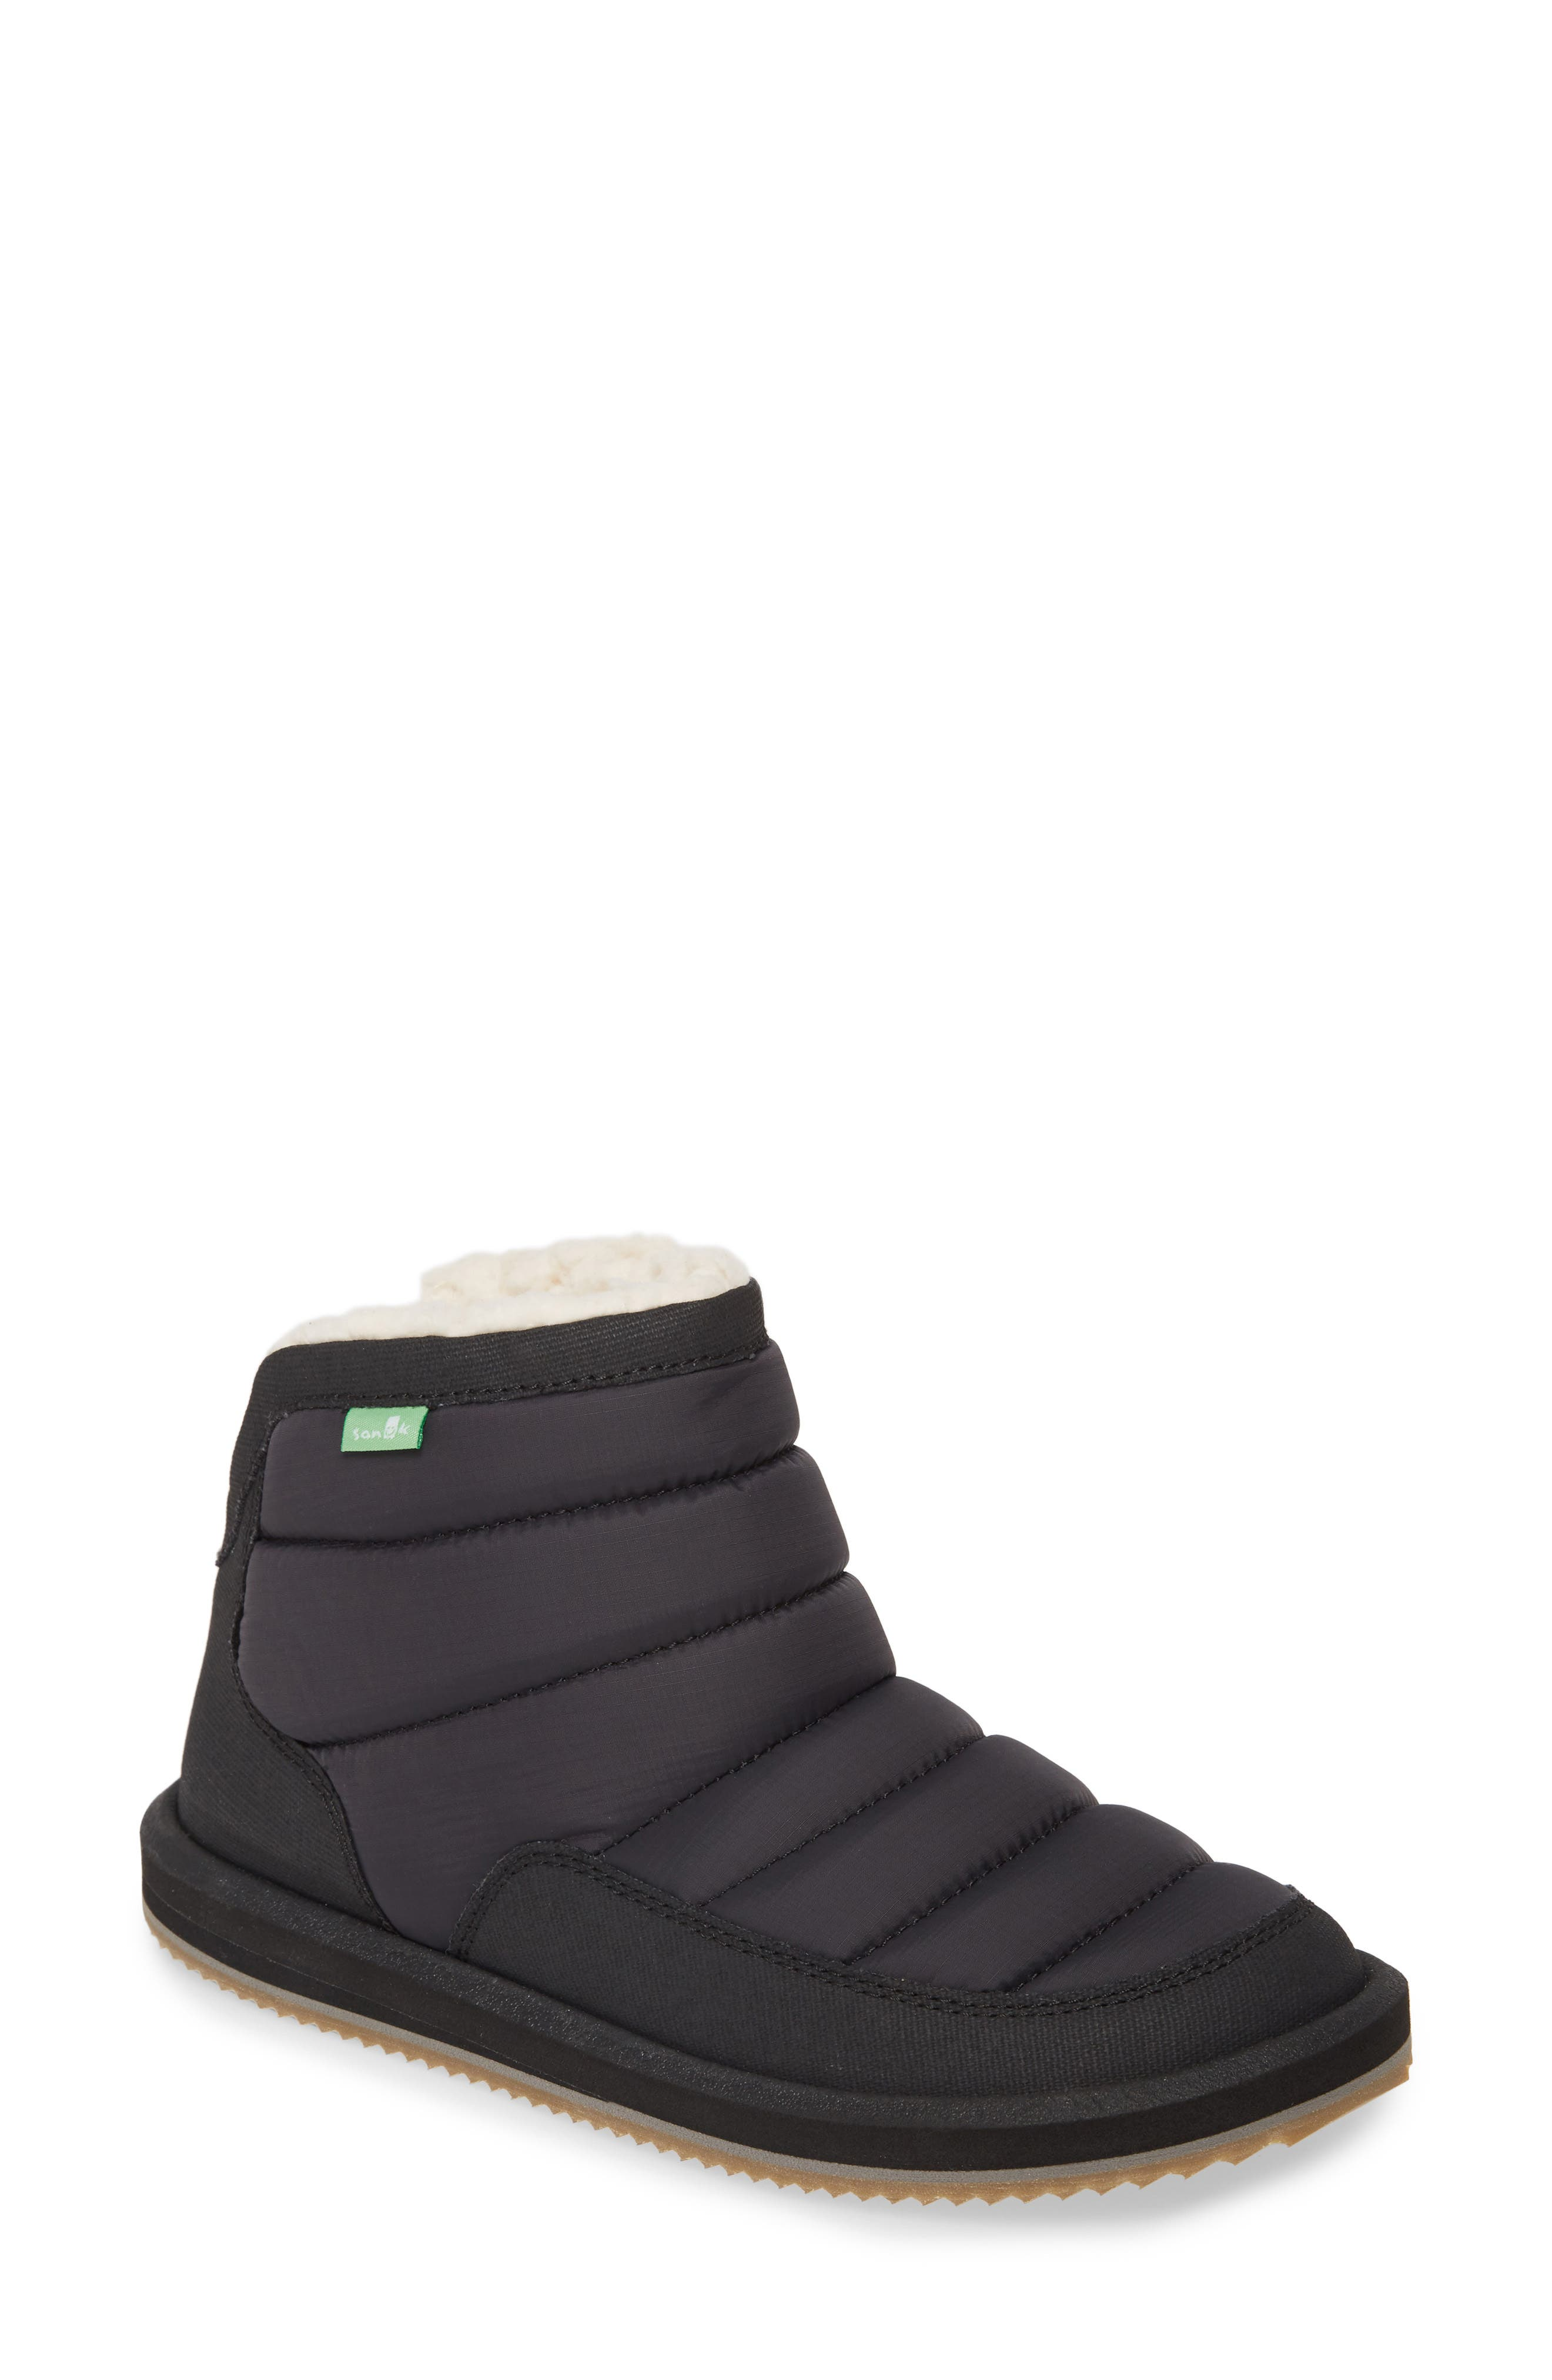 Sanuk Puff N Chill Boot, Black